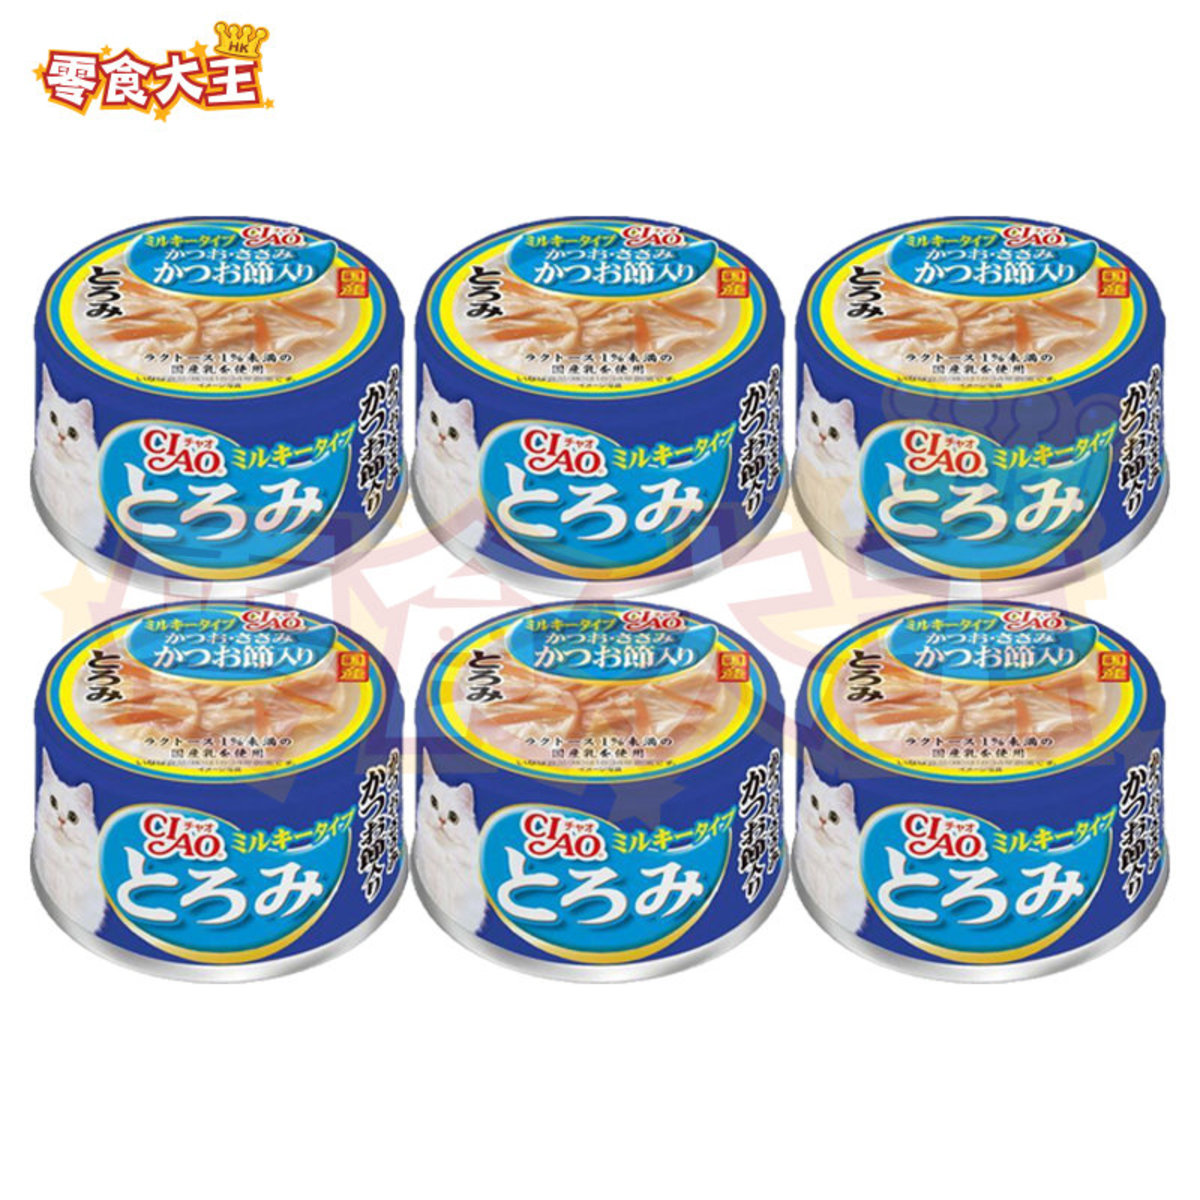 Milk Squid & Chicken Breast Squid Dry Fish Canned Cat Food- A-113  80g x 6 cans (4901133062384_6)